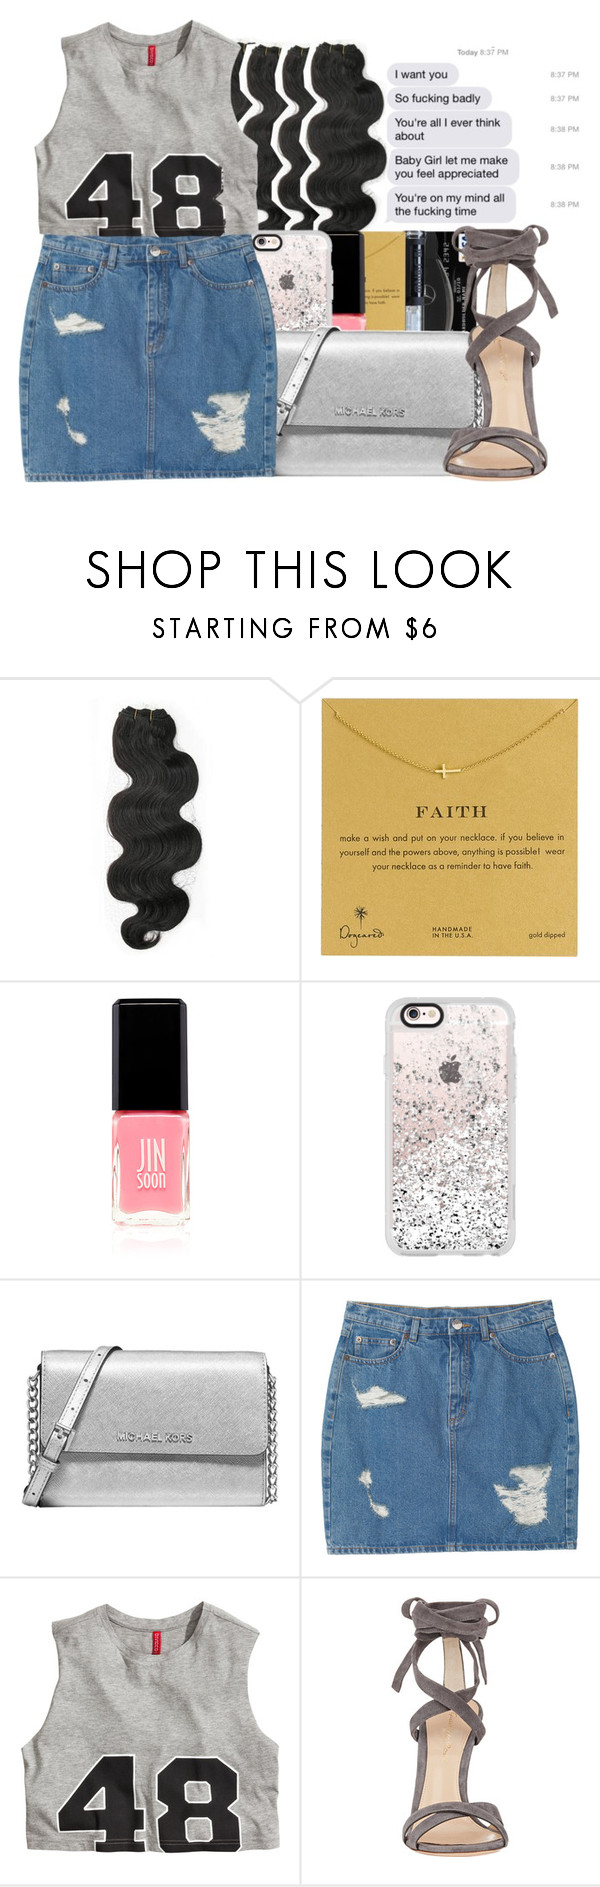 """""""Champagne Kisses hold me in your lap of luxury """" by daddyslittlevixen ❤ liked on Polyvore featuring &K, Dogeared, Jin Soon, Casetify, Michael Kors, Monki, H&M and Gianvito Rossi"""